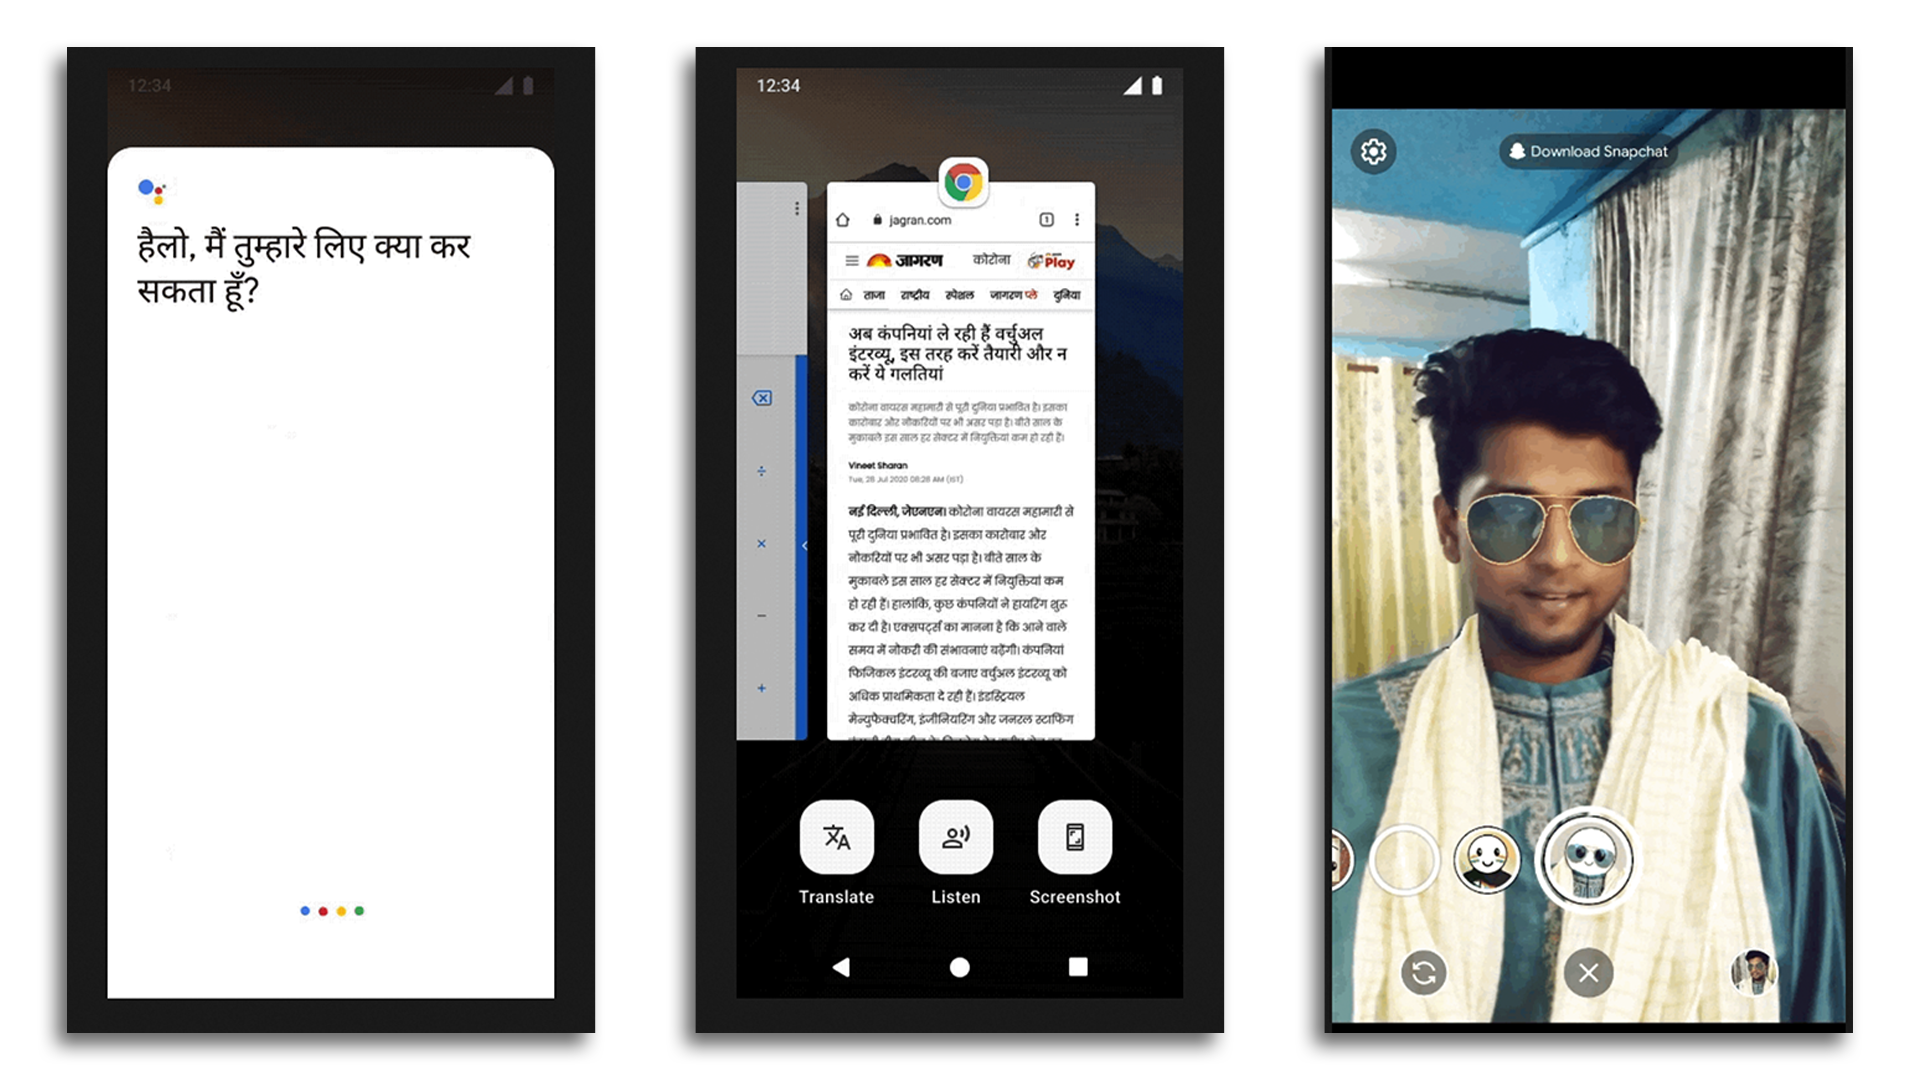 Examples of the JioPhone Next's text-to-speech, Google Assistant, and Snapchat AR featuers.